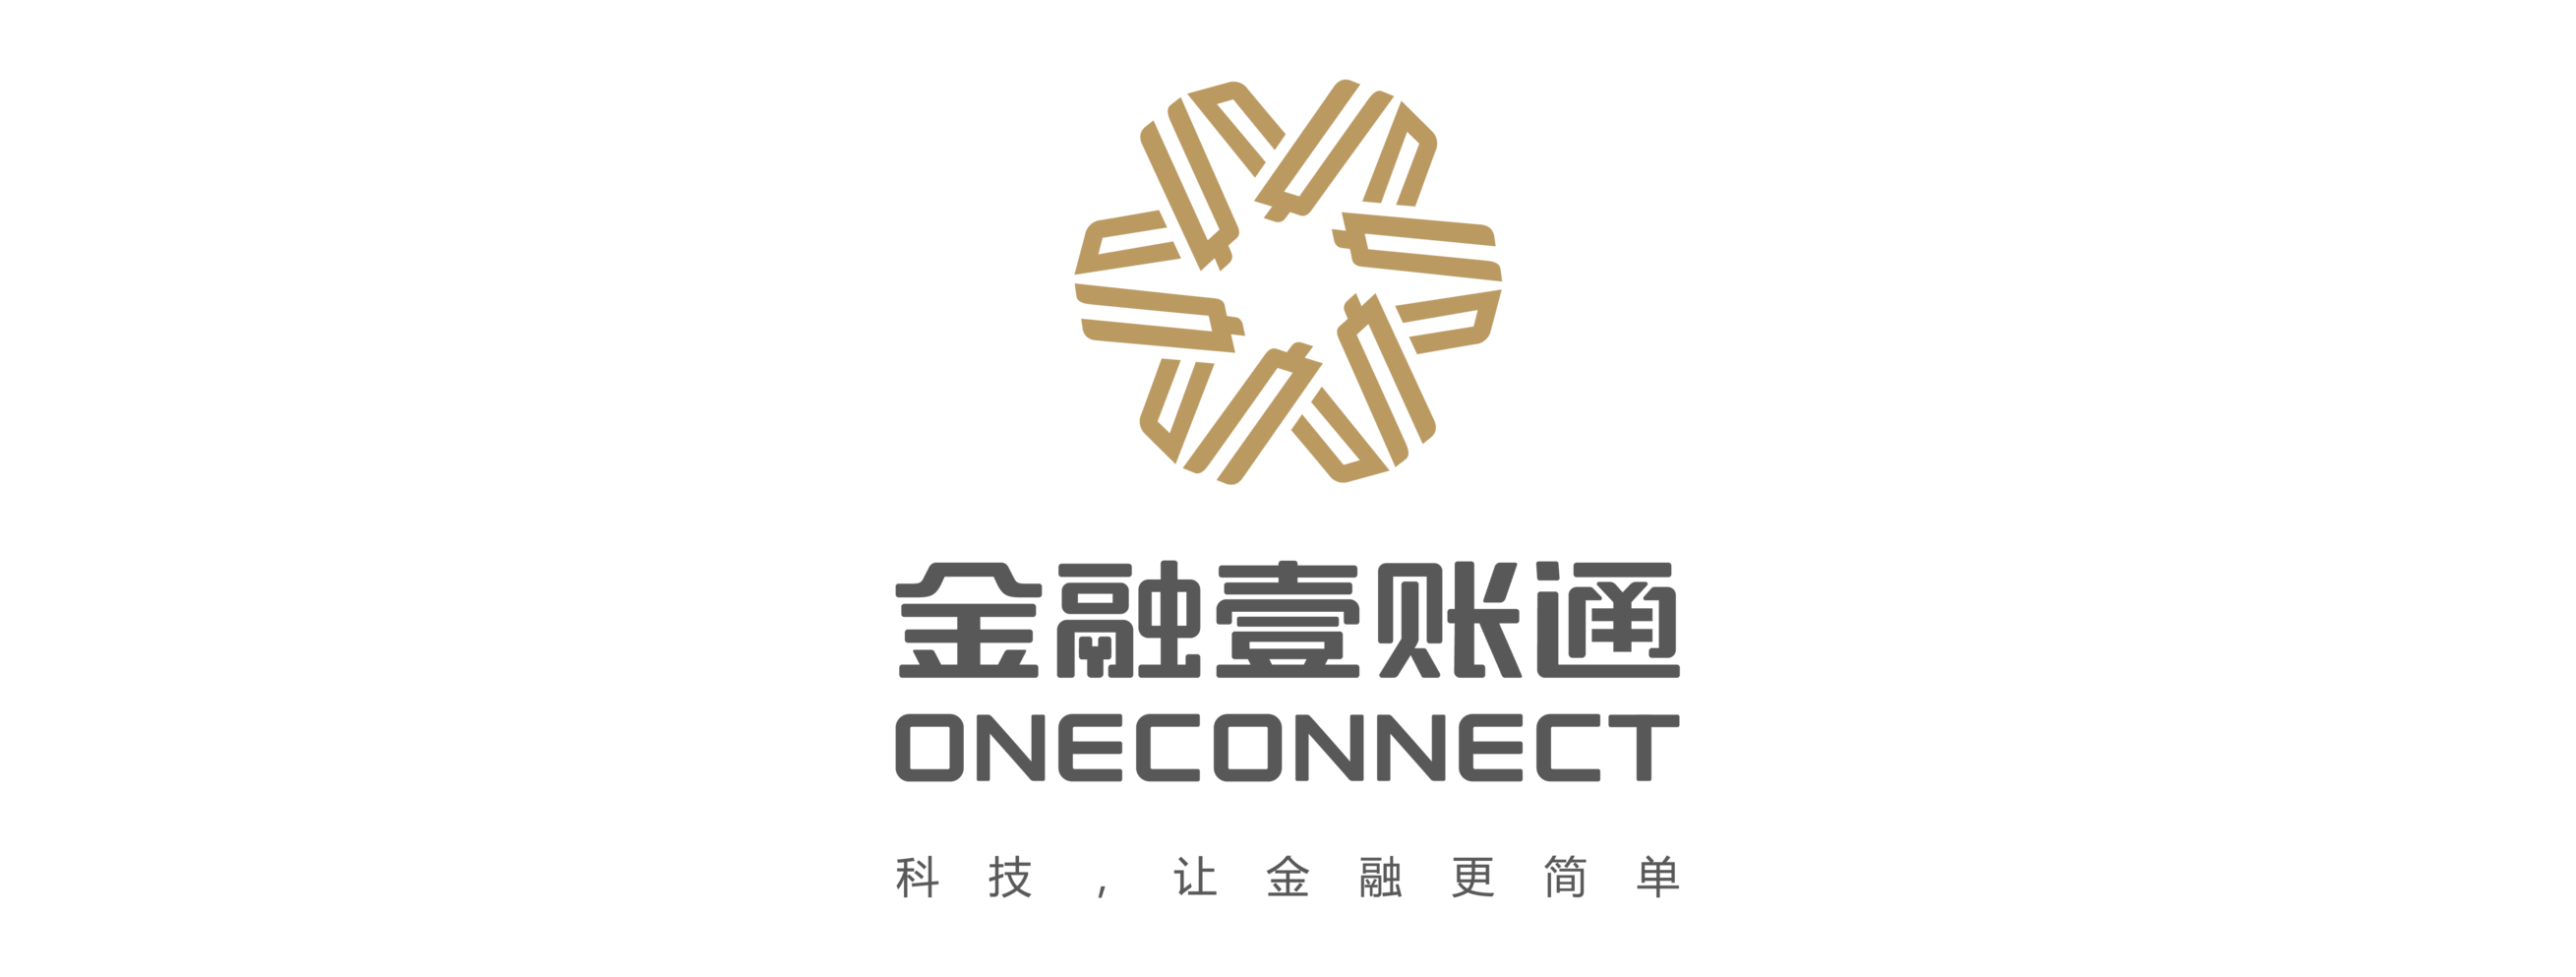 IPO OneConnect Financial Technology